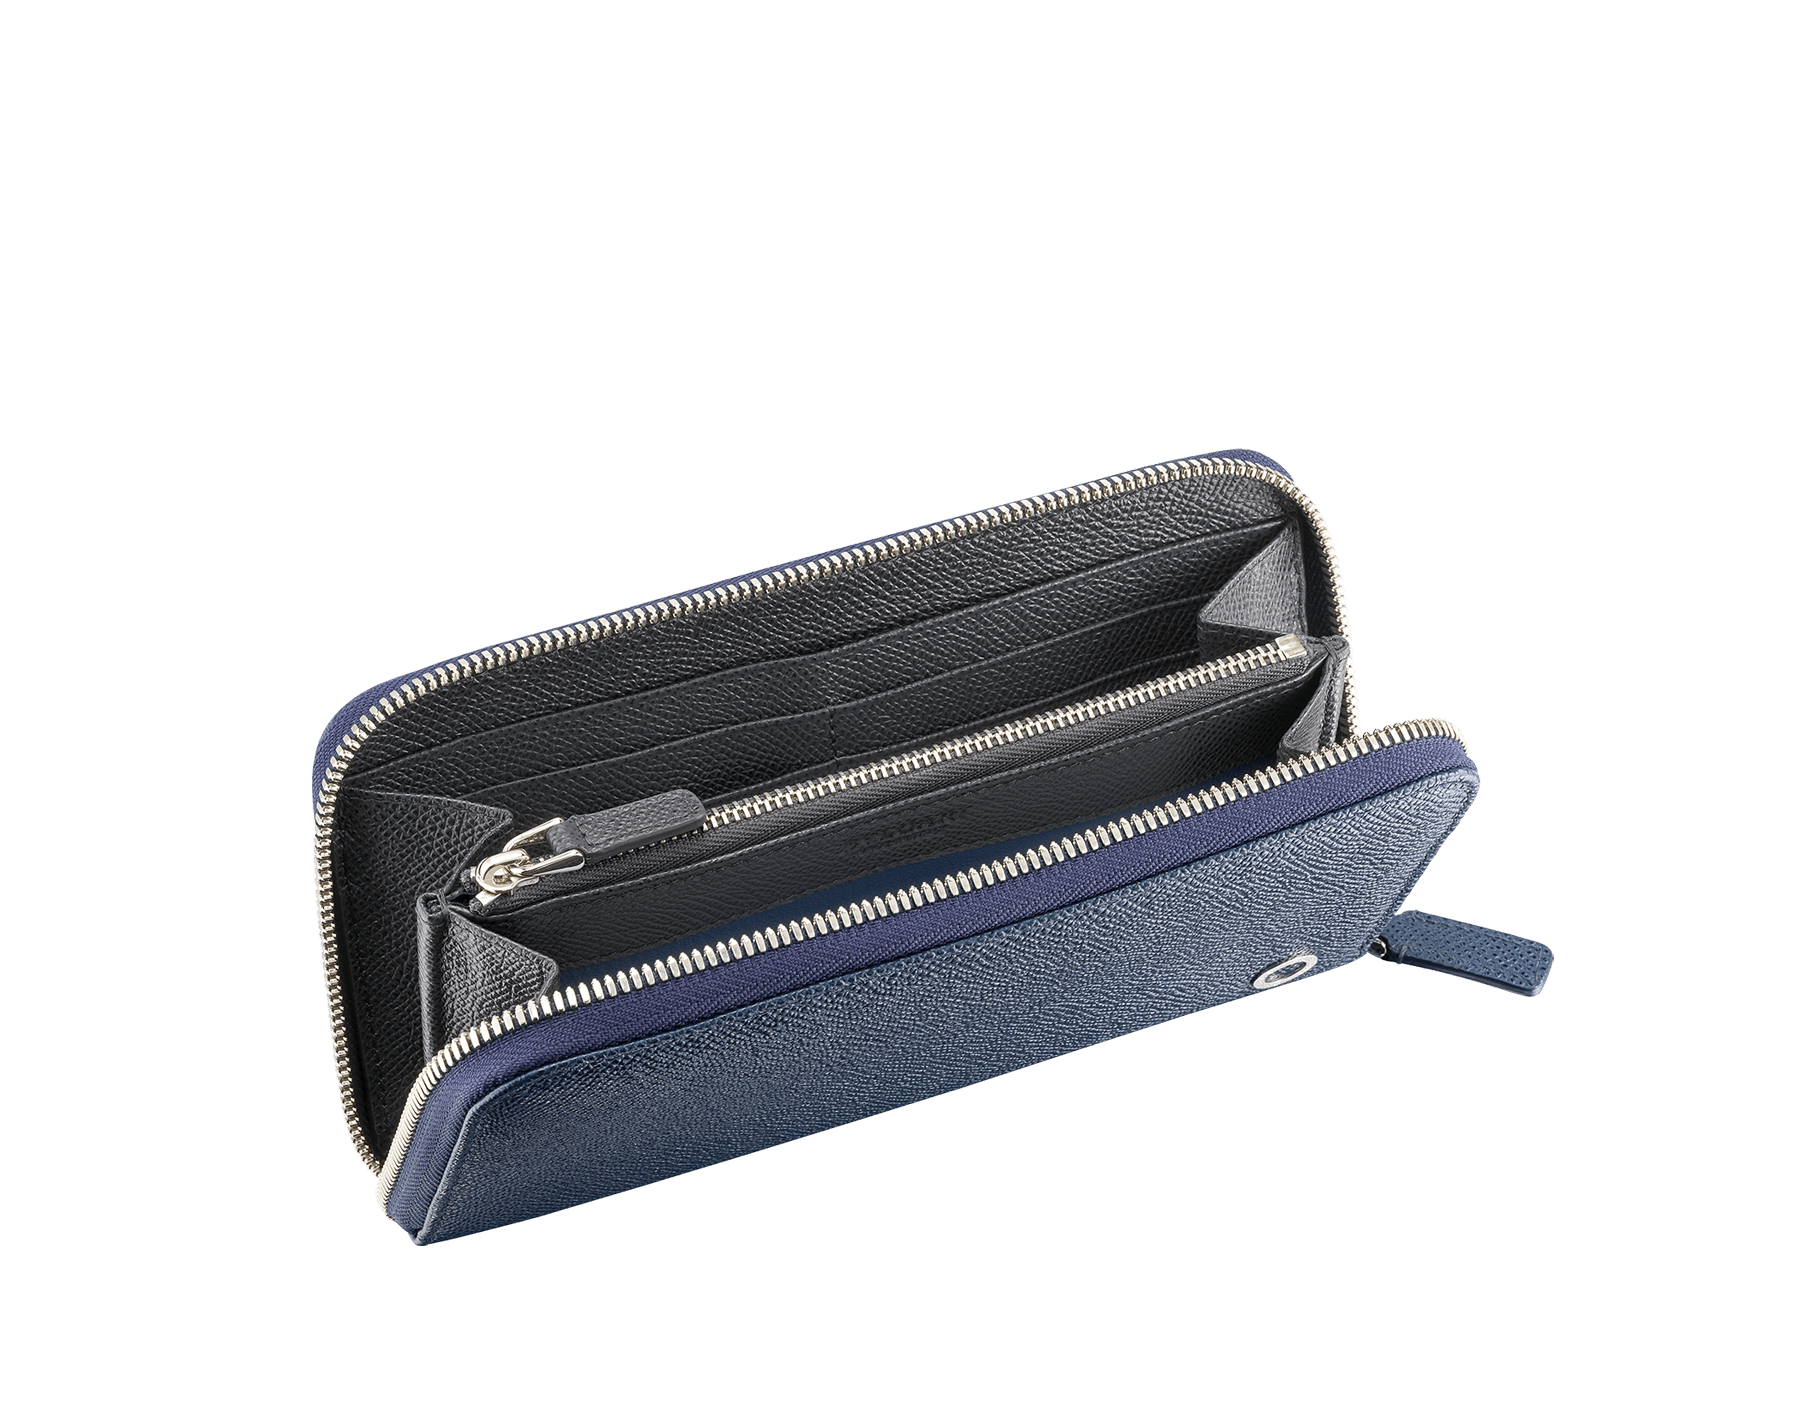 BVLGARI BVLGARI men's zipped wallet in denim sapphire and charcoal diamond grain calf leather and blue slate nappa lining. Iconic logo décor in palladium plated brass. 289102 image 2